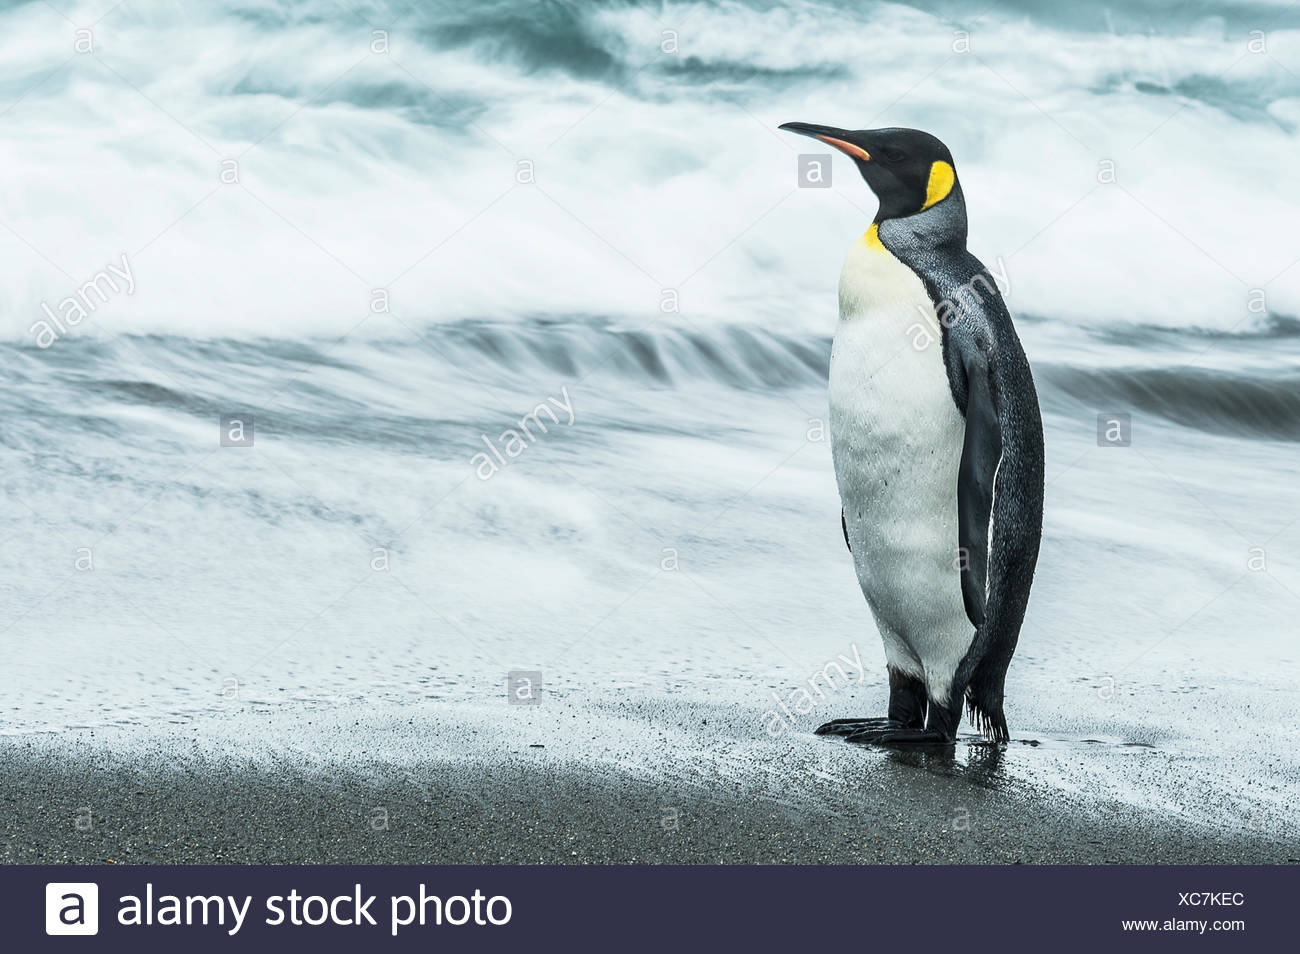 King penguin (Aptenodytes patagonicus) standing on the wet beach; South Georgia, South Georgia and the South Sandwich Islands, United Kingdom - Stock Image